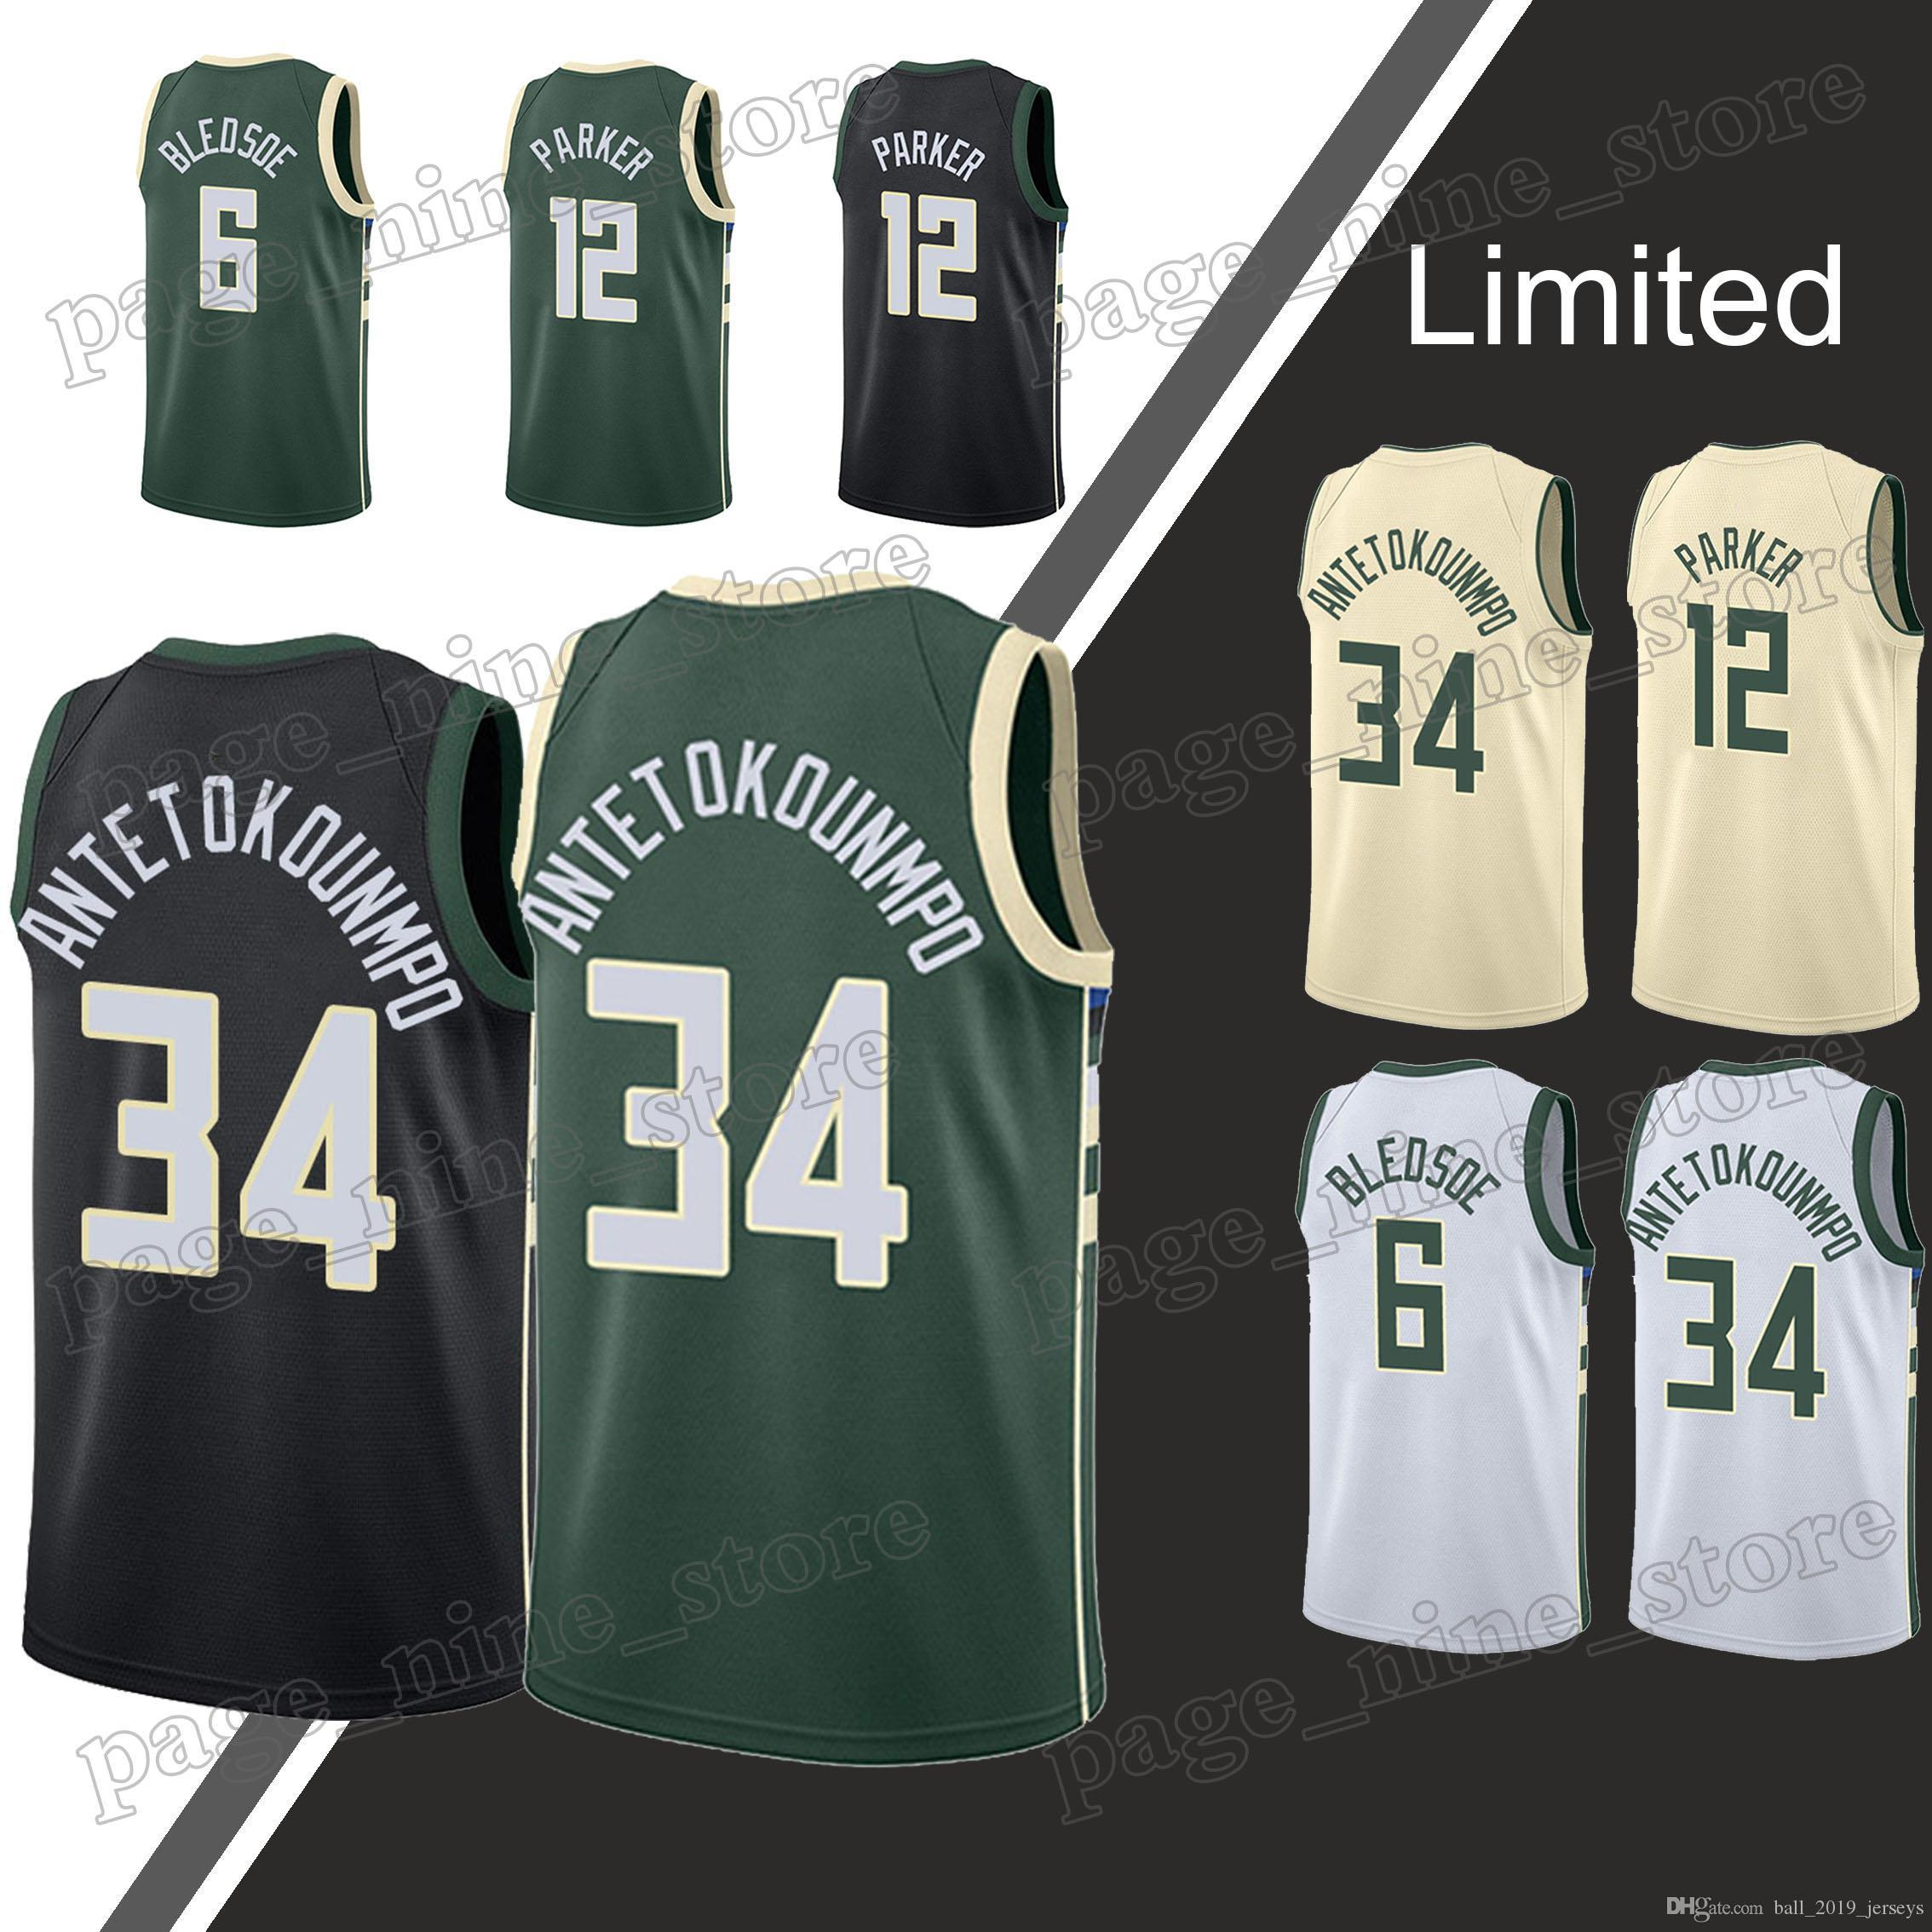 5758381a6 2019 Milwaukee Jerseys Bucks Giannis 34 Antetokounmpo Eric 6 Bledsoe Ray 34  Allen Hot Sale Basketball Jerseys From Ball 2019 jerseys